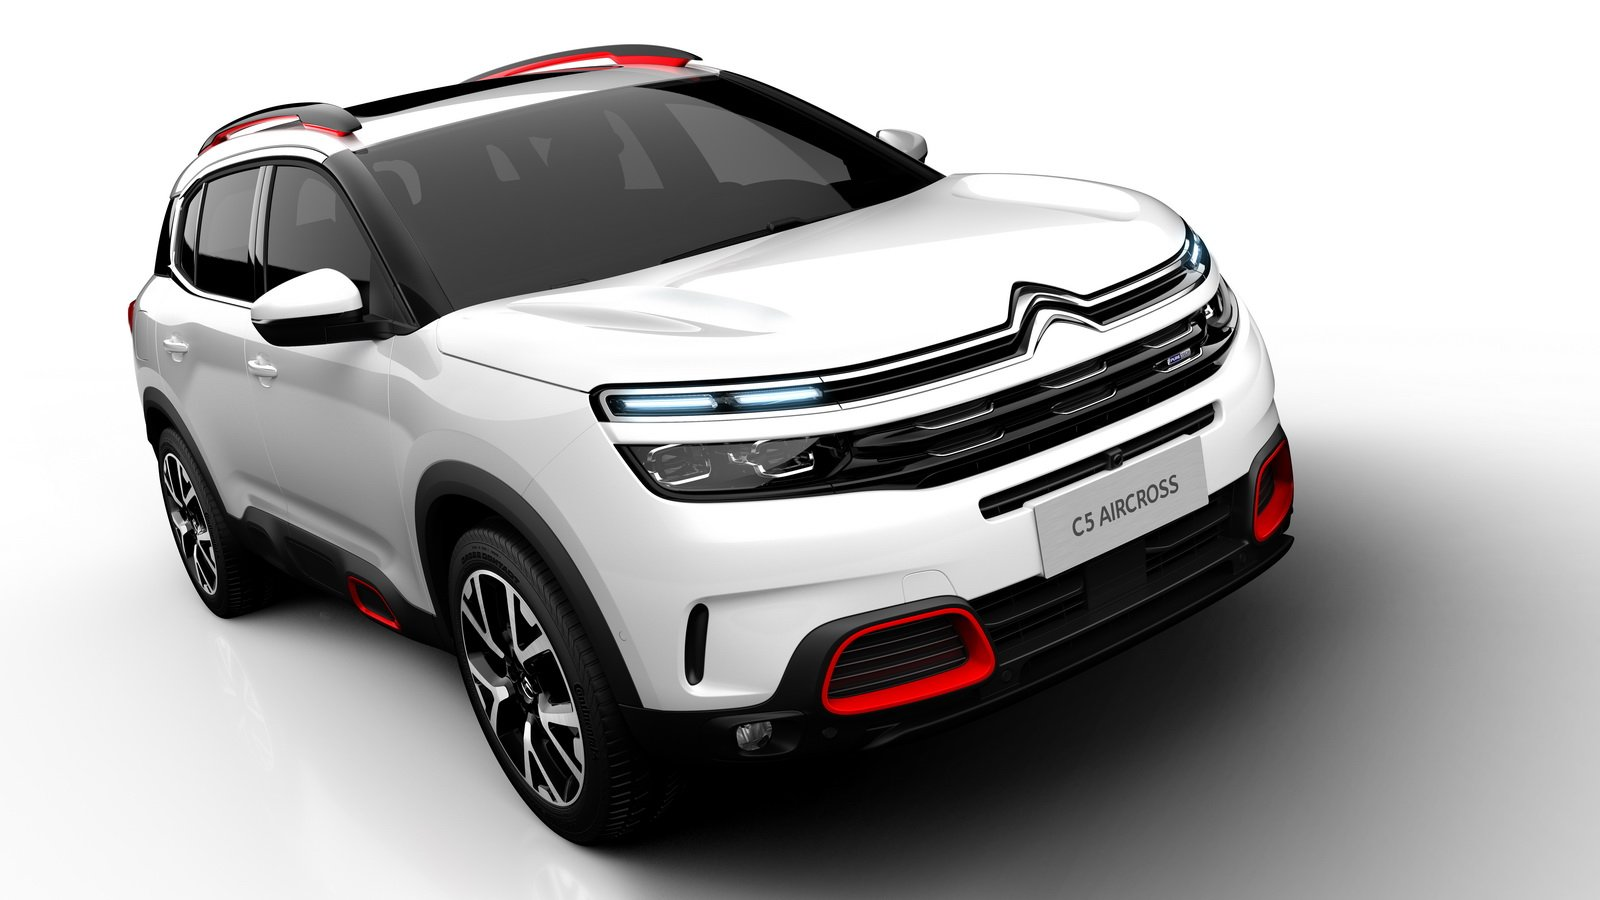 nowy citroen c5 aircross 2018 oficjalnie motofilm. Black Bedroom Furniture Sets. Home Design Ideas